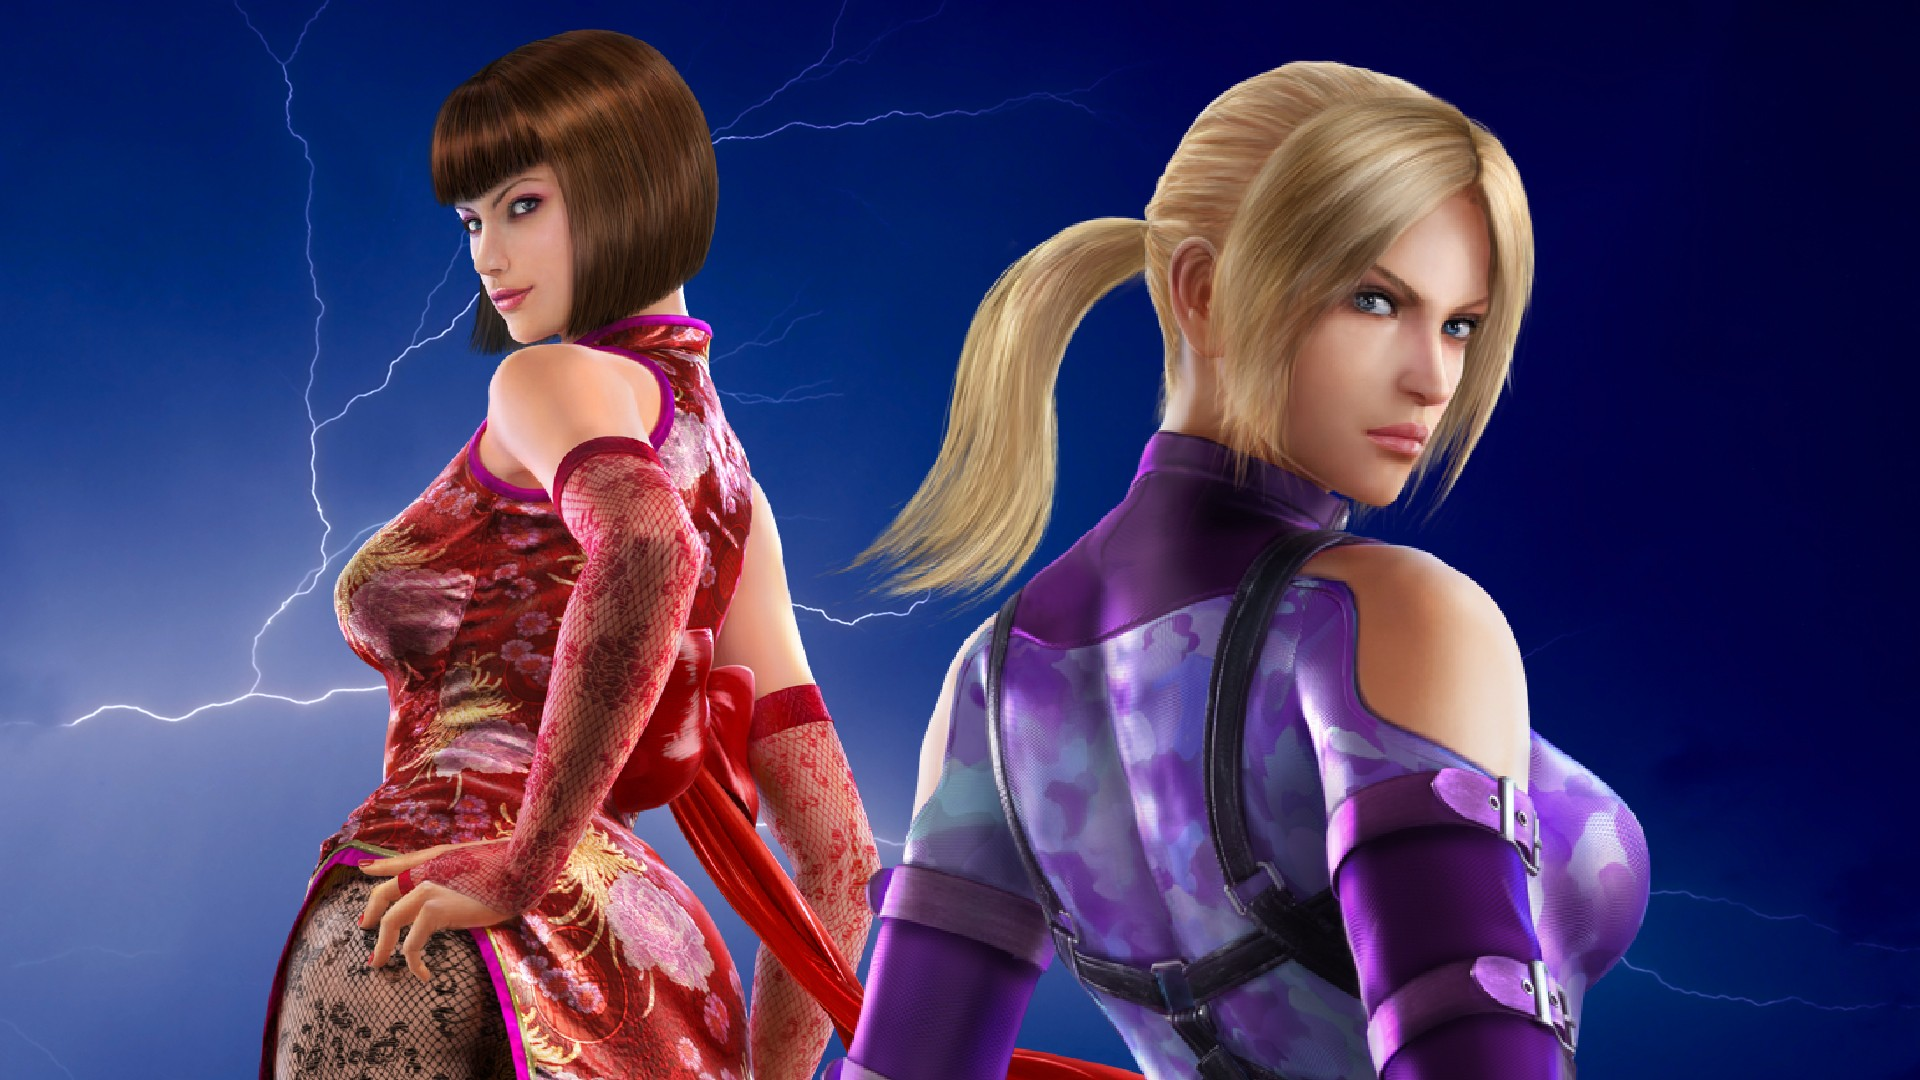 Tekken images tekken tag 2 HD wallpaper and background photos 1920x1080